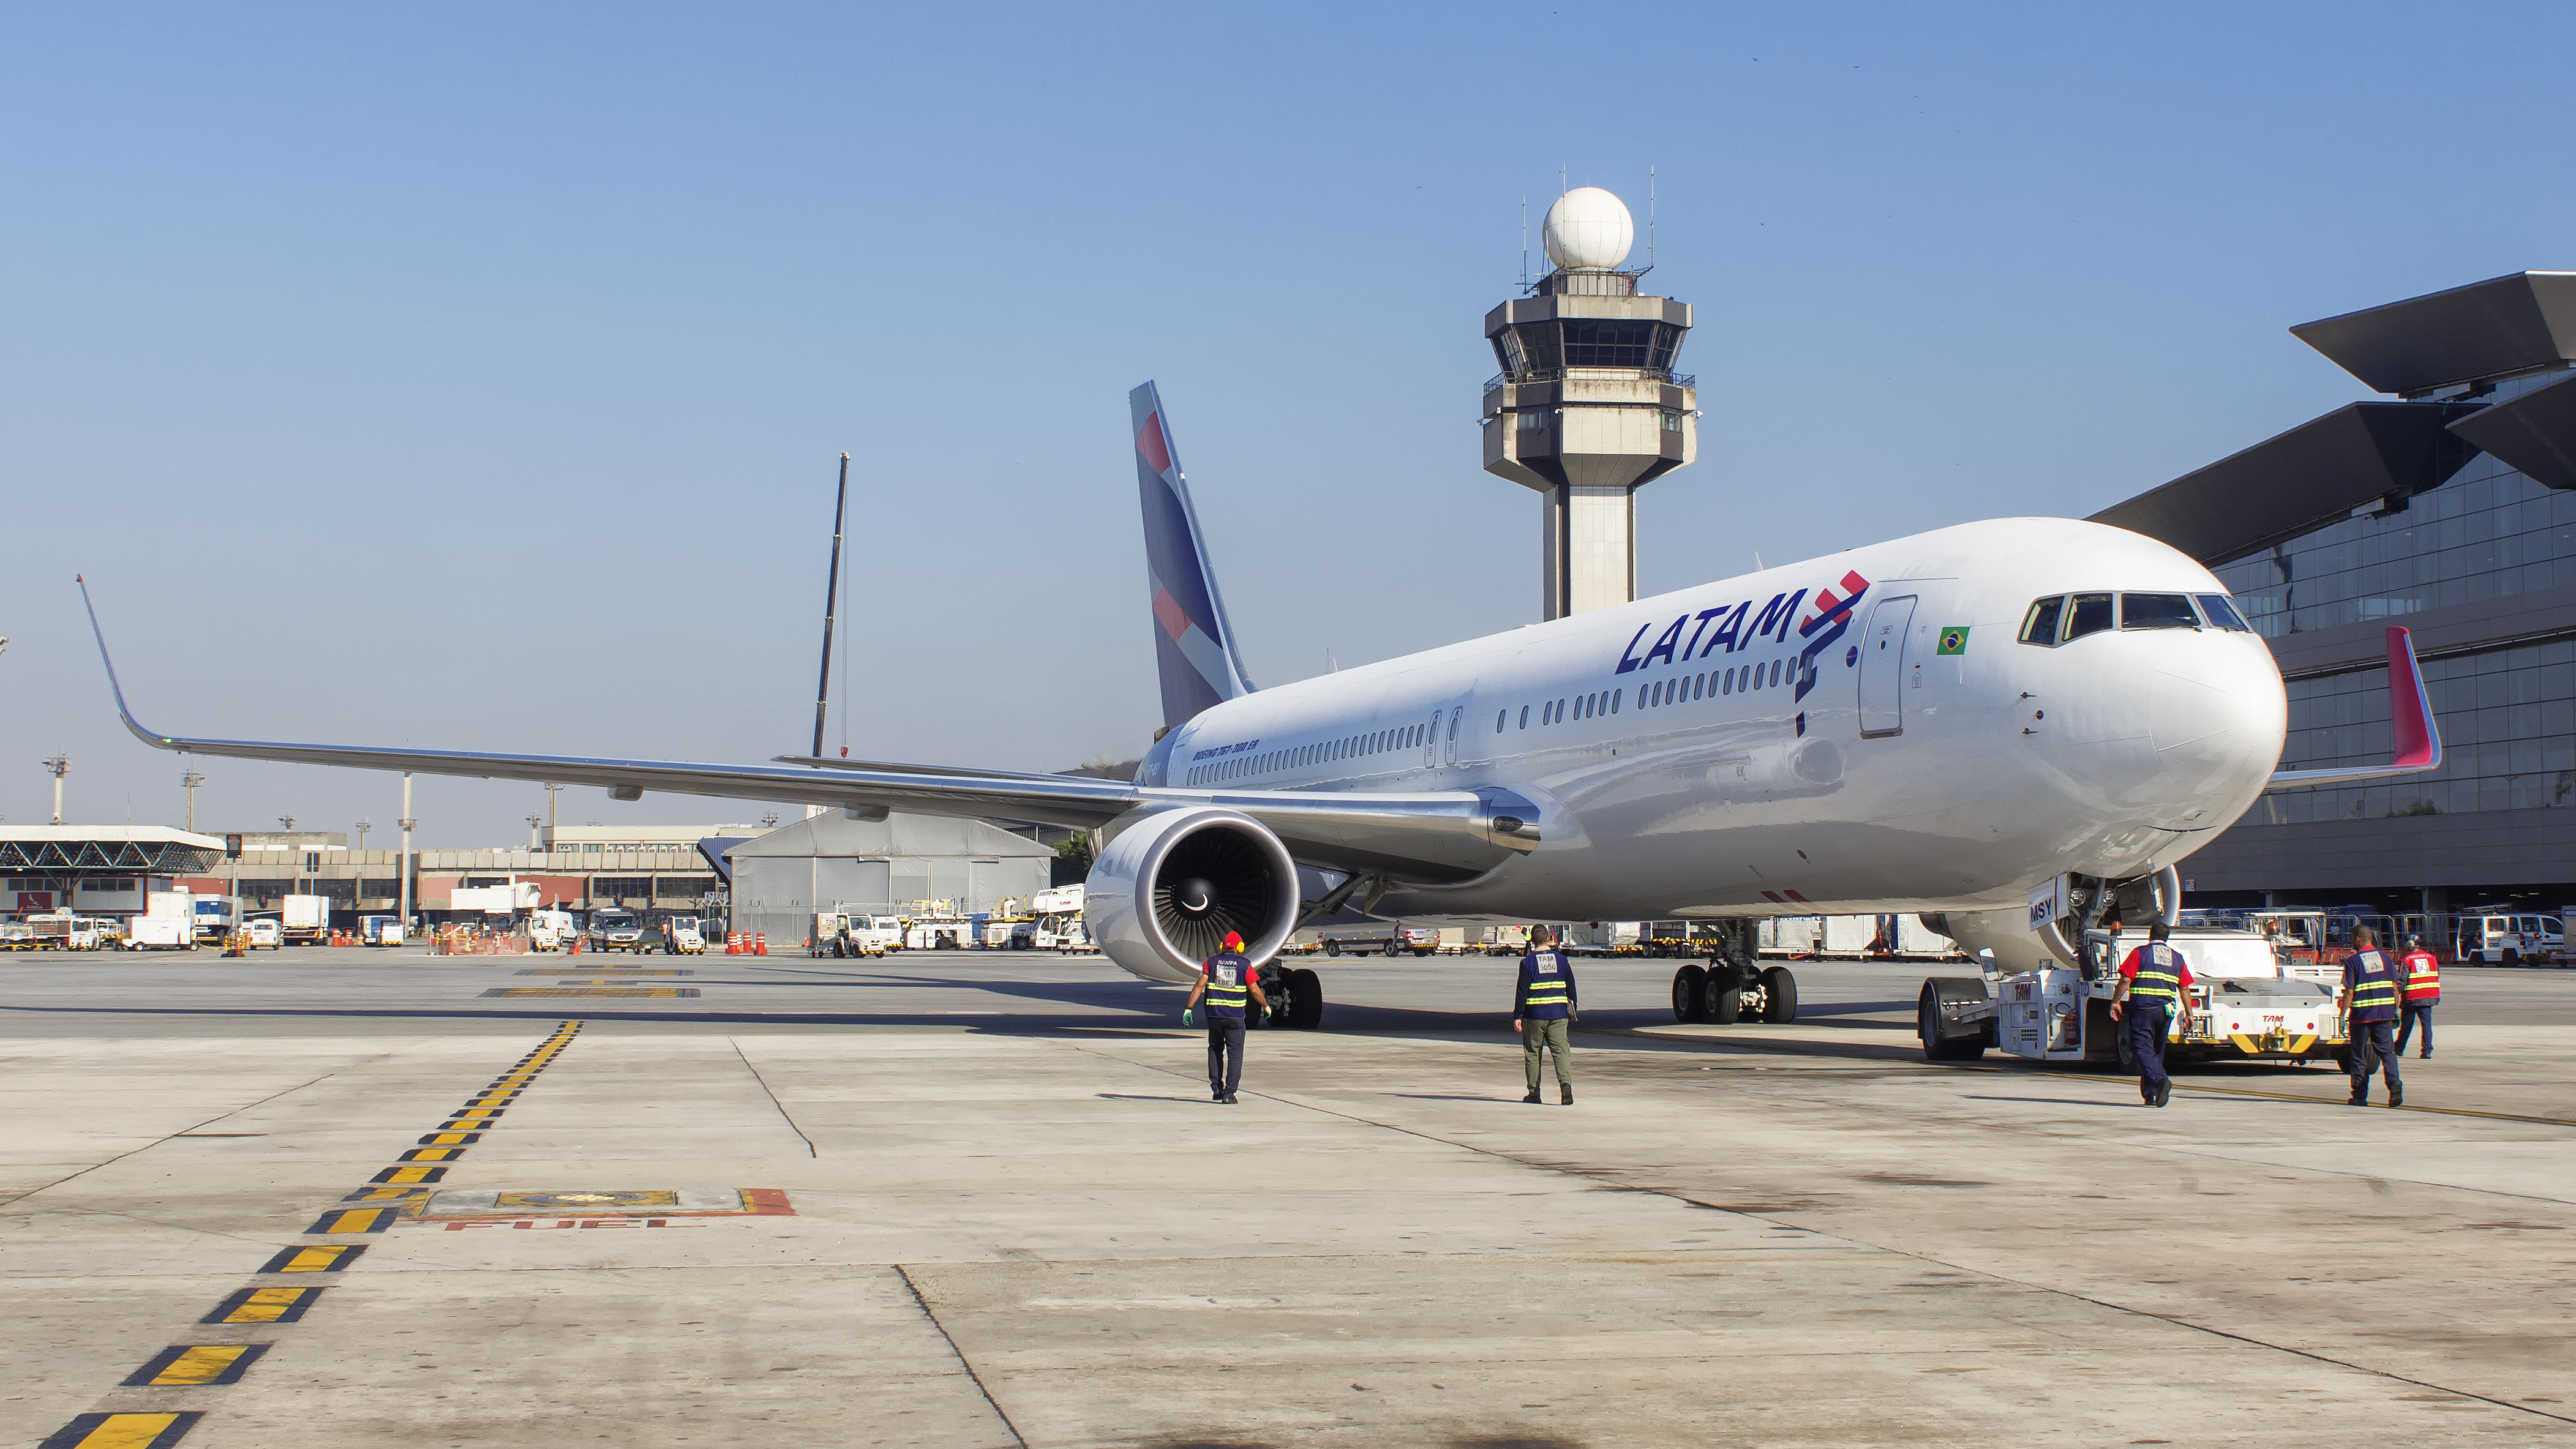 Boeing 767 of Latam Airlines push back with air traffic controller tower in background at Guarulhos International Airport in Sao Paulo Brazil